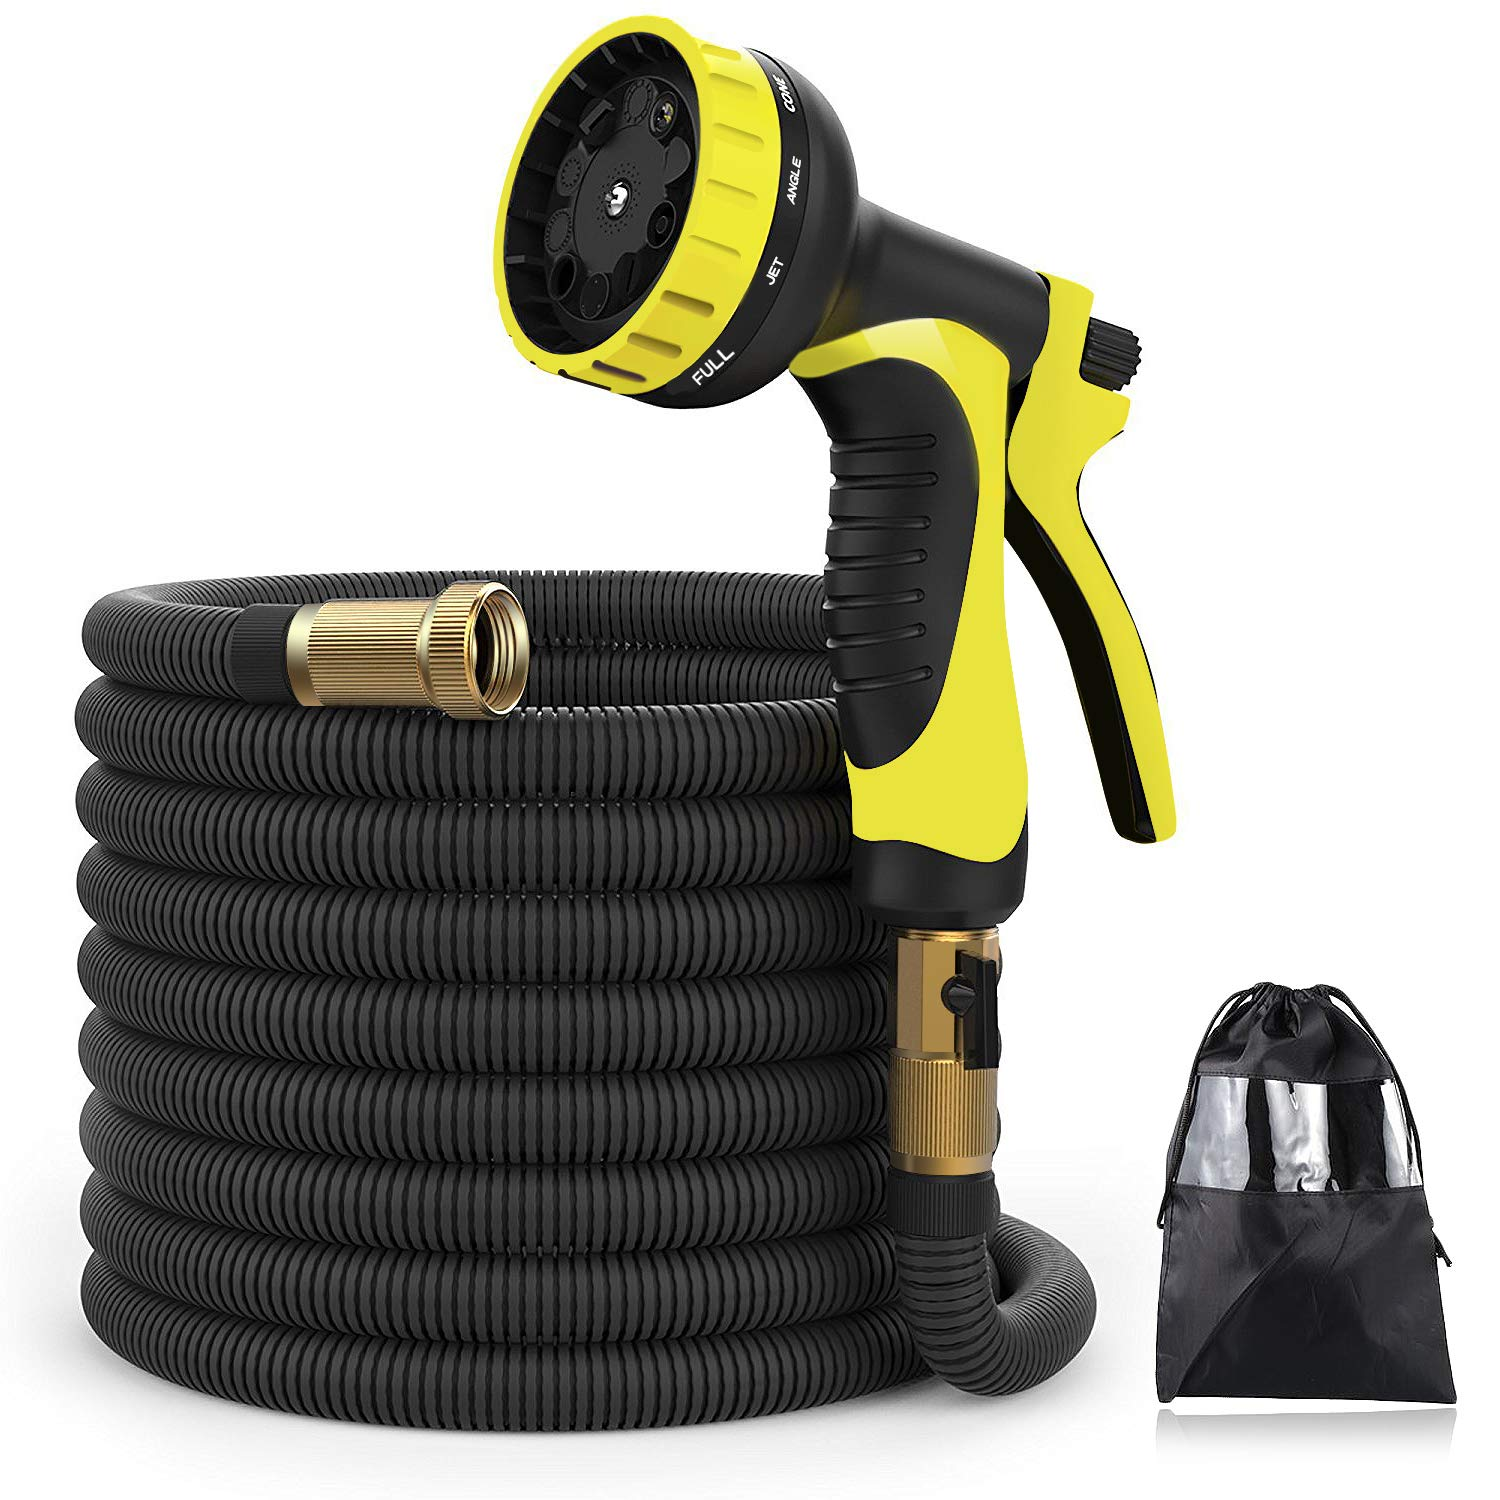 XBUTY New Version Garden Hose,50FT Expandable Water Hose 9 Patern Spray Nozzle,High Pressure Extra Strength Fabric Double Latex Core 3/4 Solid Brass Fittings with Carrying Bag by XBUTY